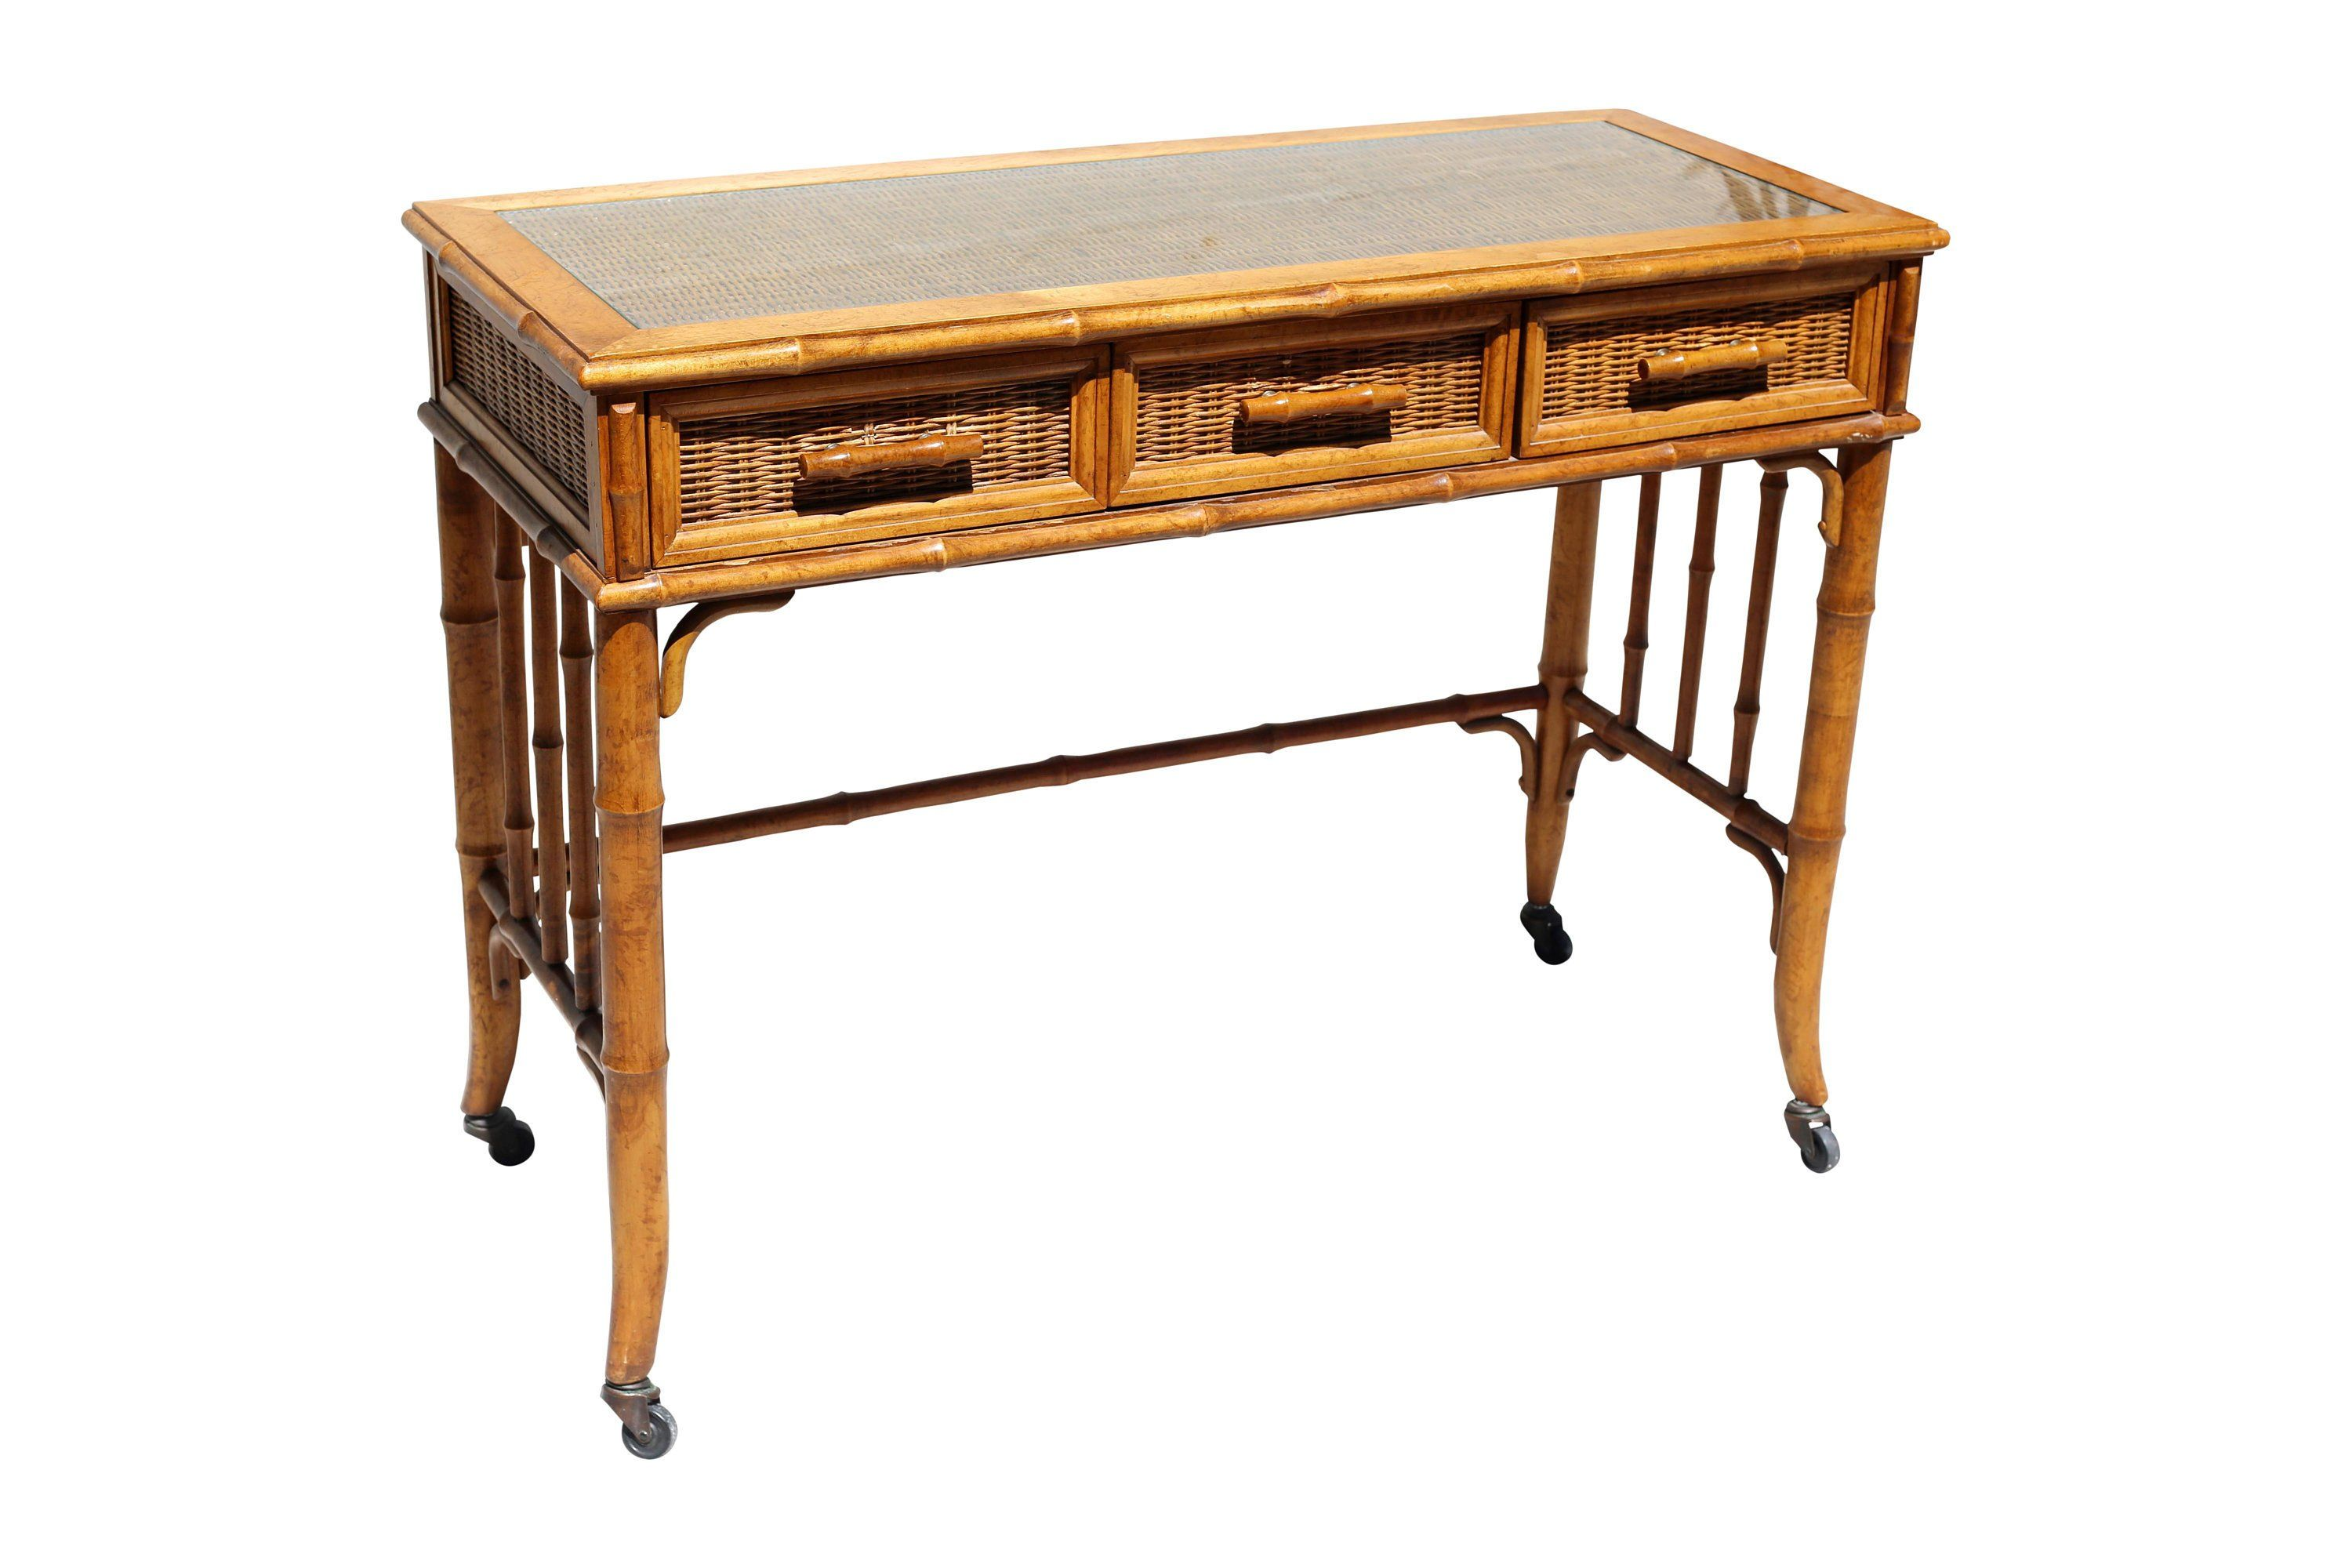 Vintage Wood Bamboo And Wicker Writing Desk With Drawers Glass Top And Casters Writing Desk With Drawers Vintage Wood Desk With Drawers